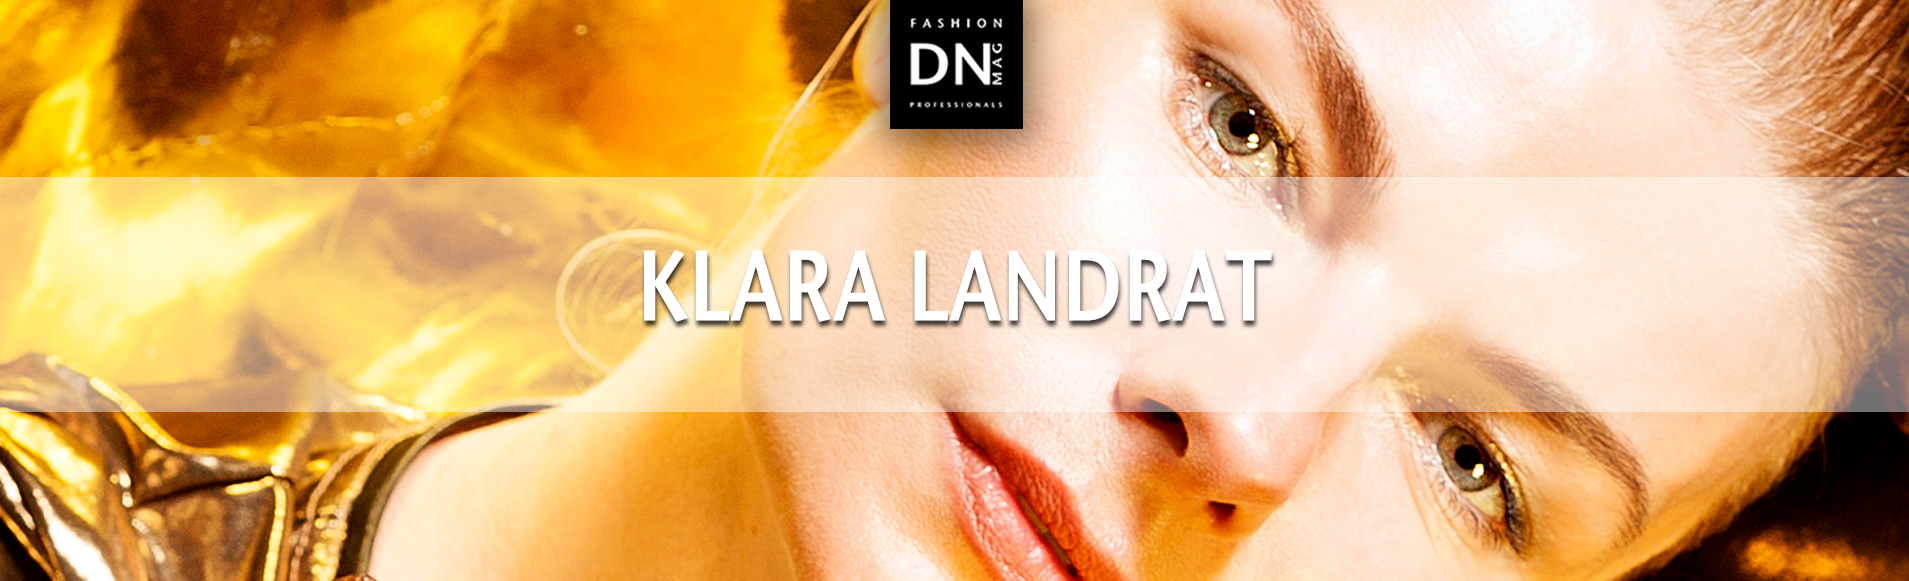 DNMAG-KLARA-LANDRAT-interview-2019_2